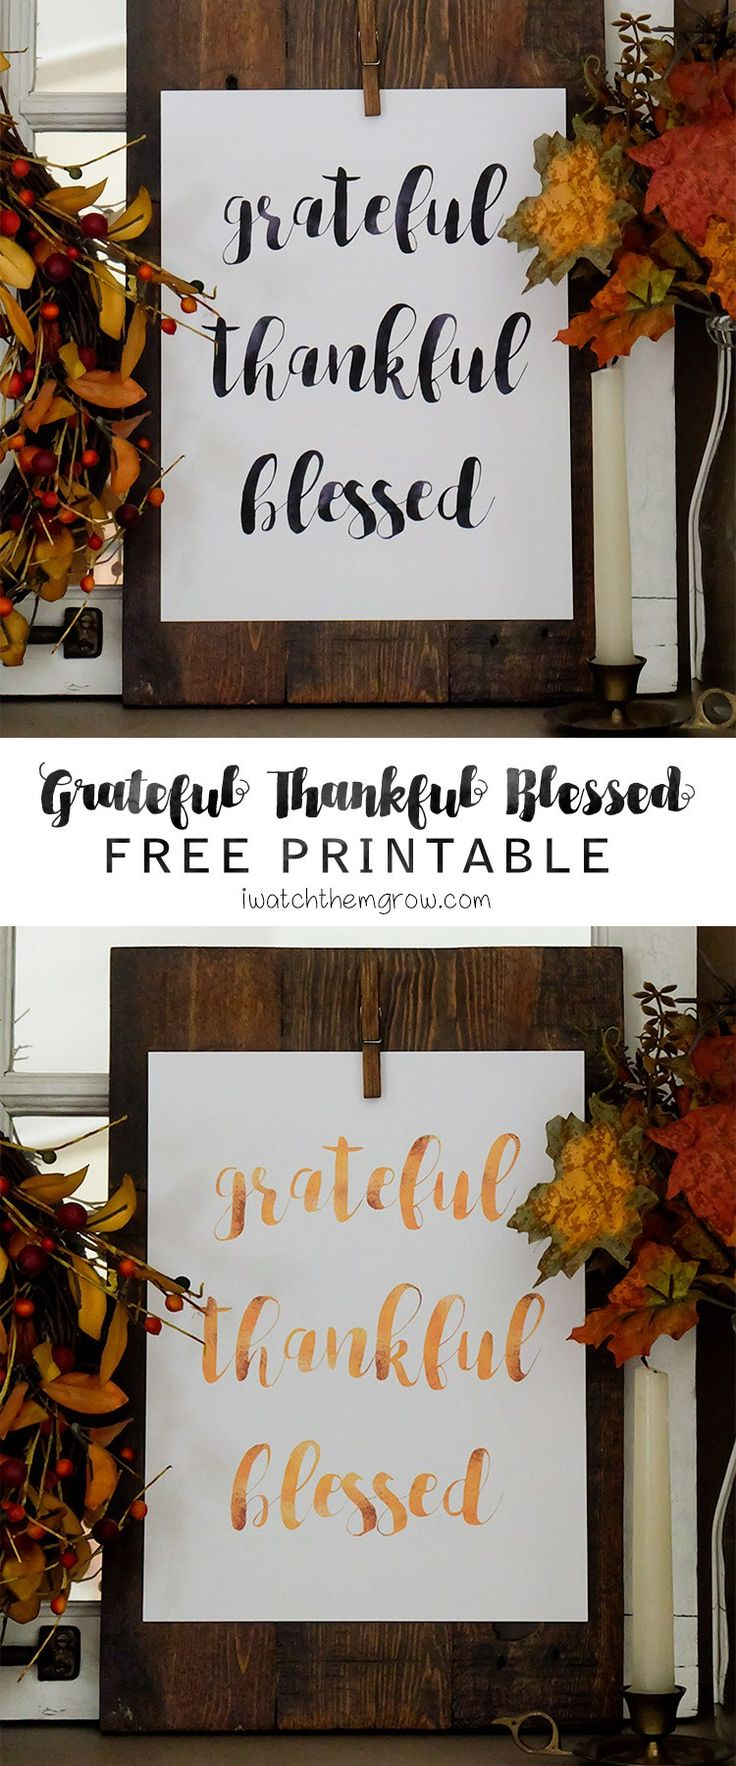 Grateful Thankful Blessed Free Printable Watercolors